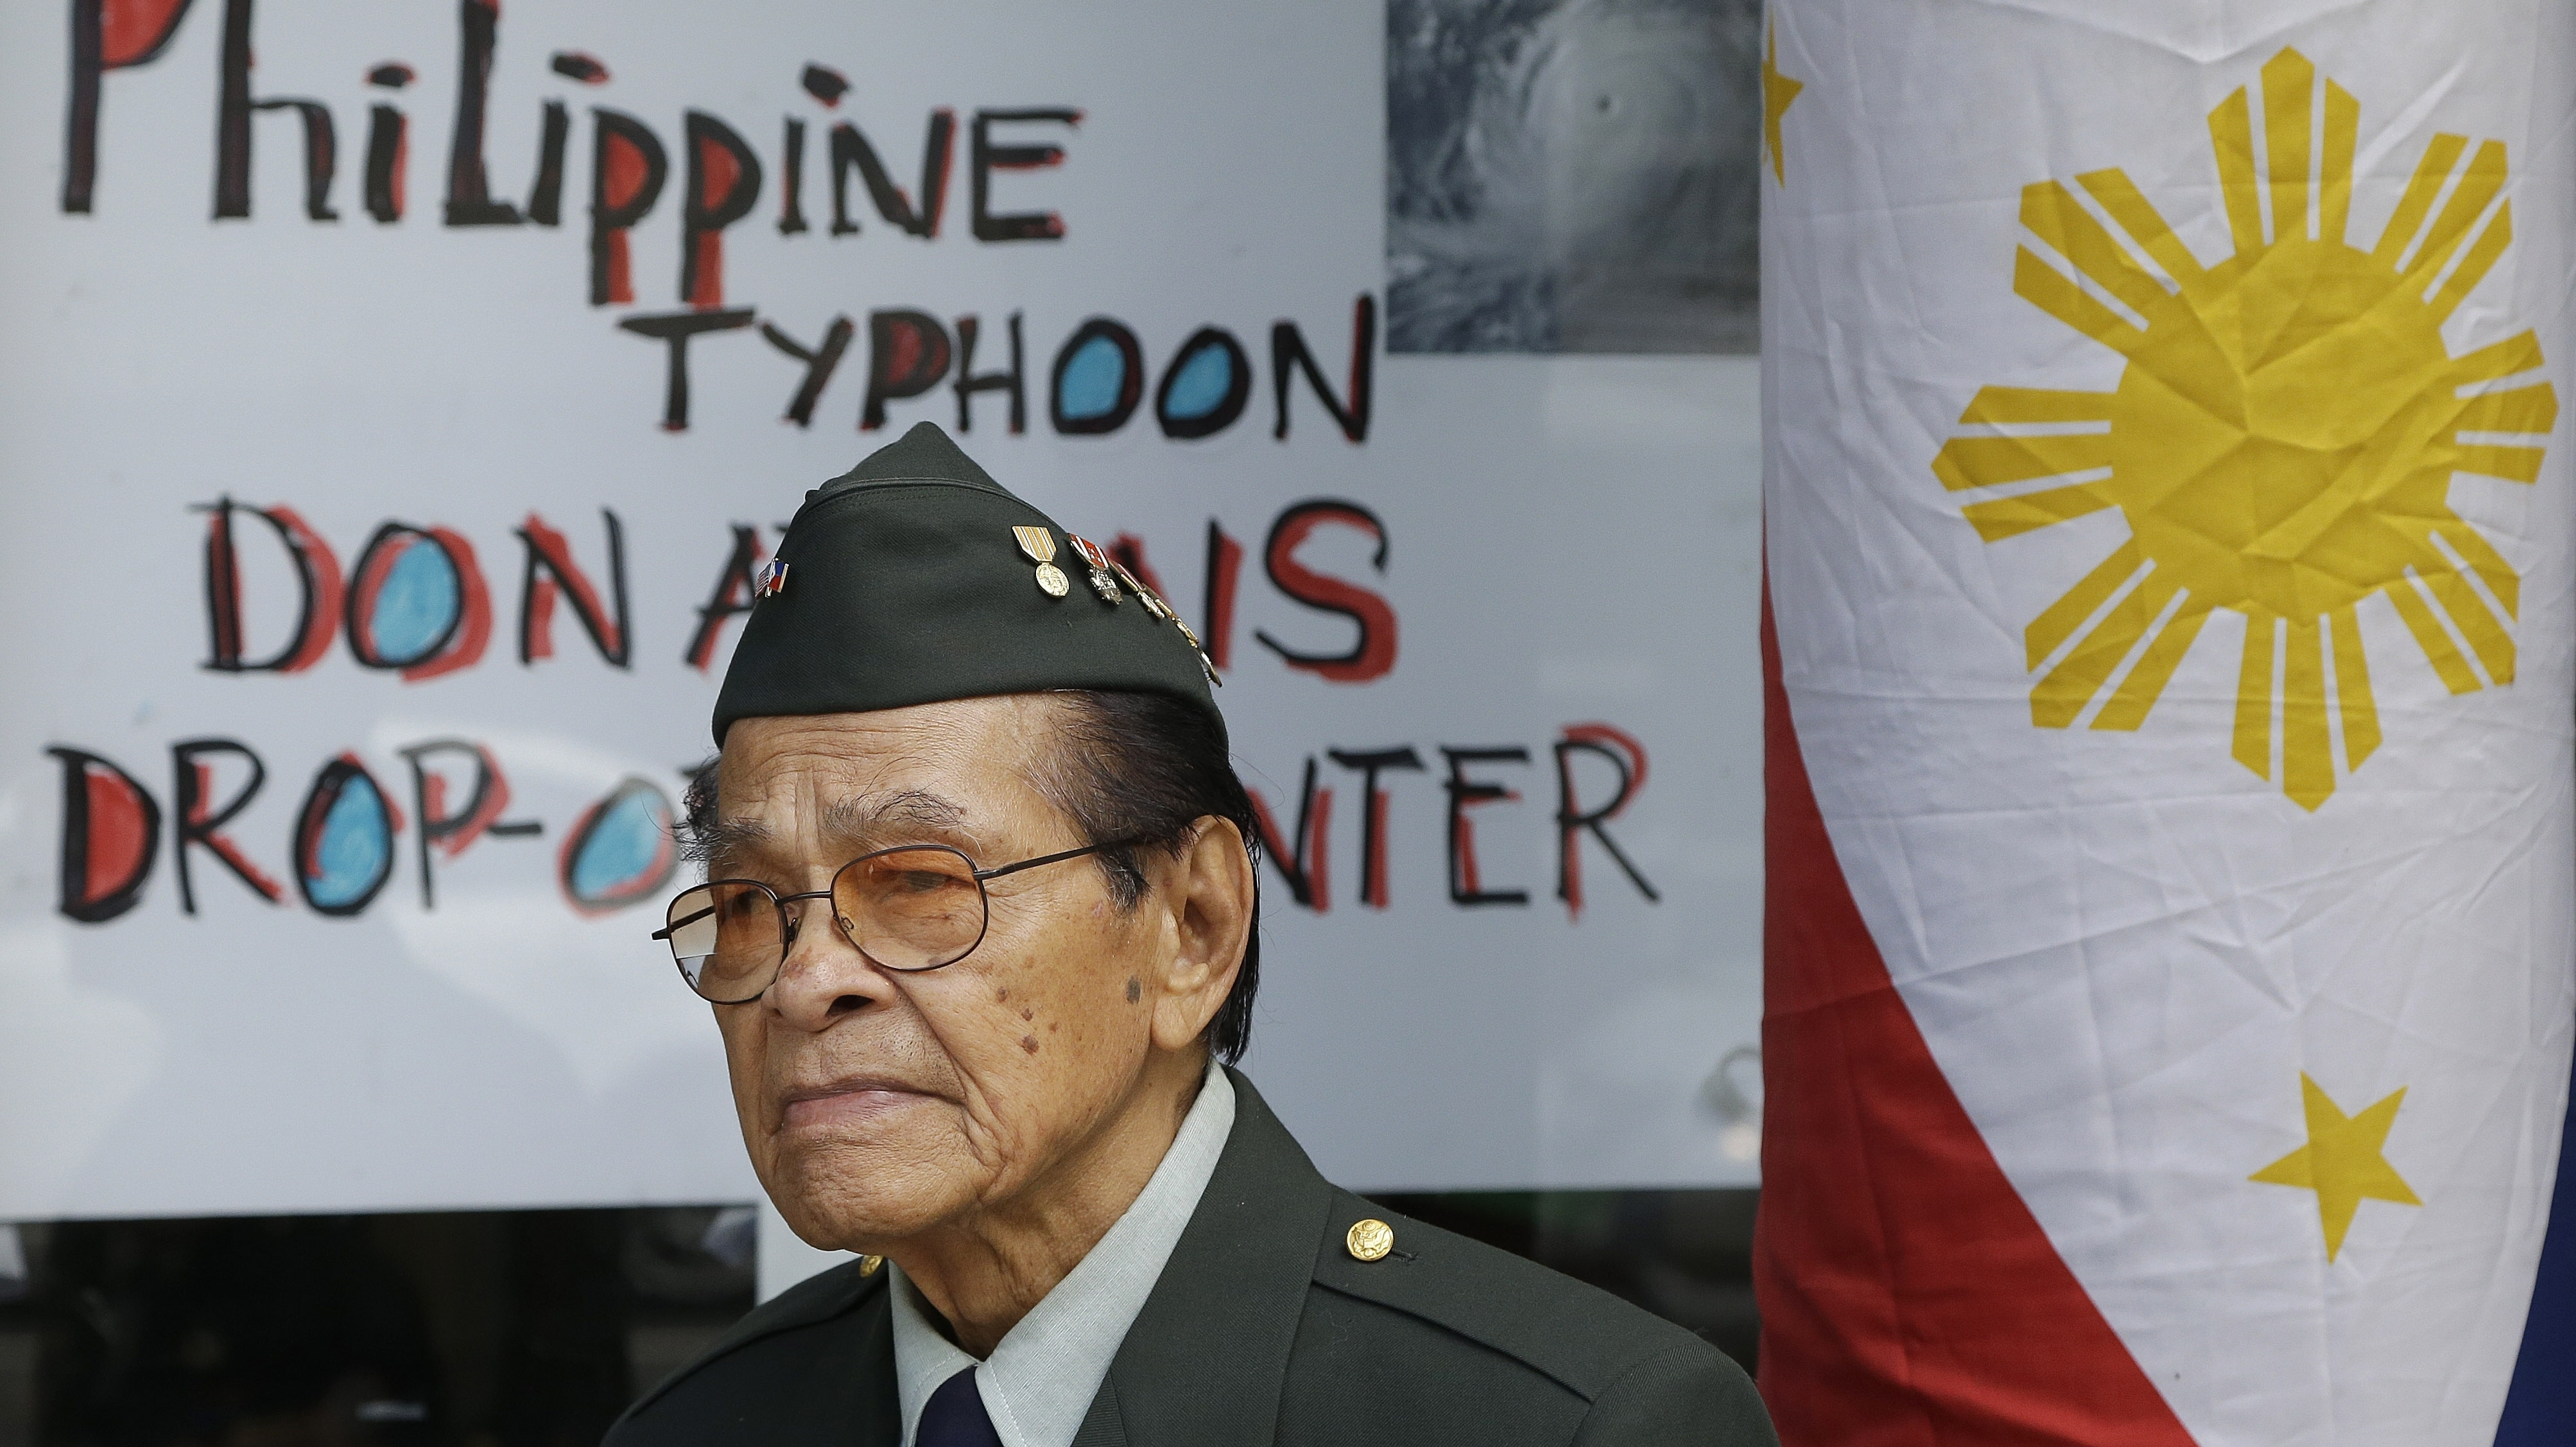 Philippine Expats In California Contribute To Typhoon Relief